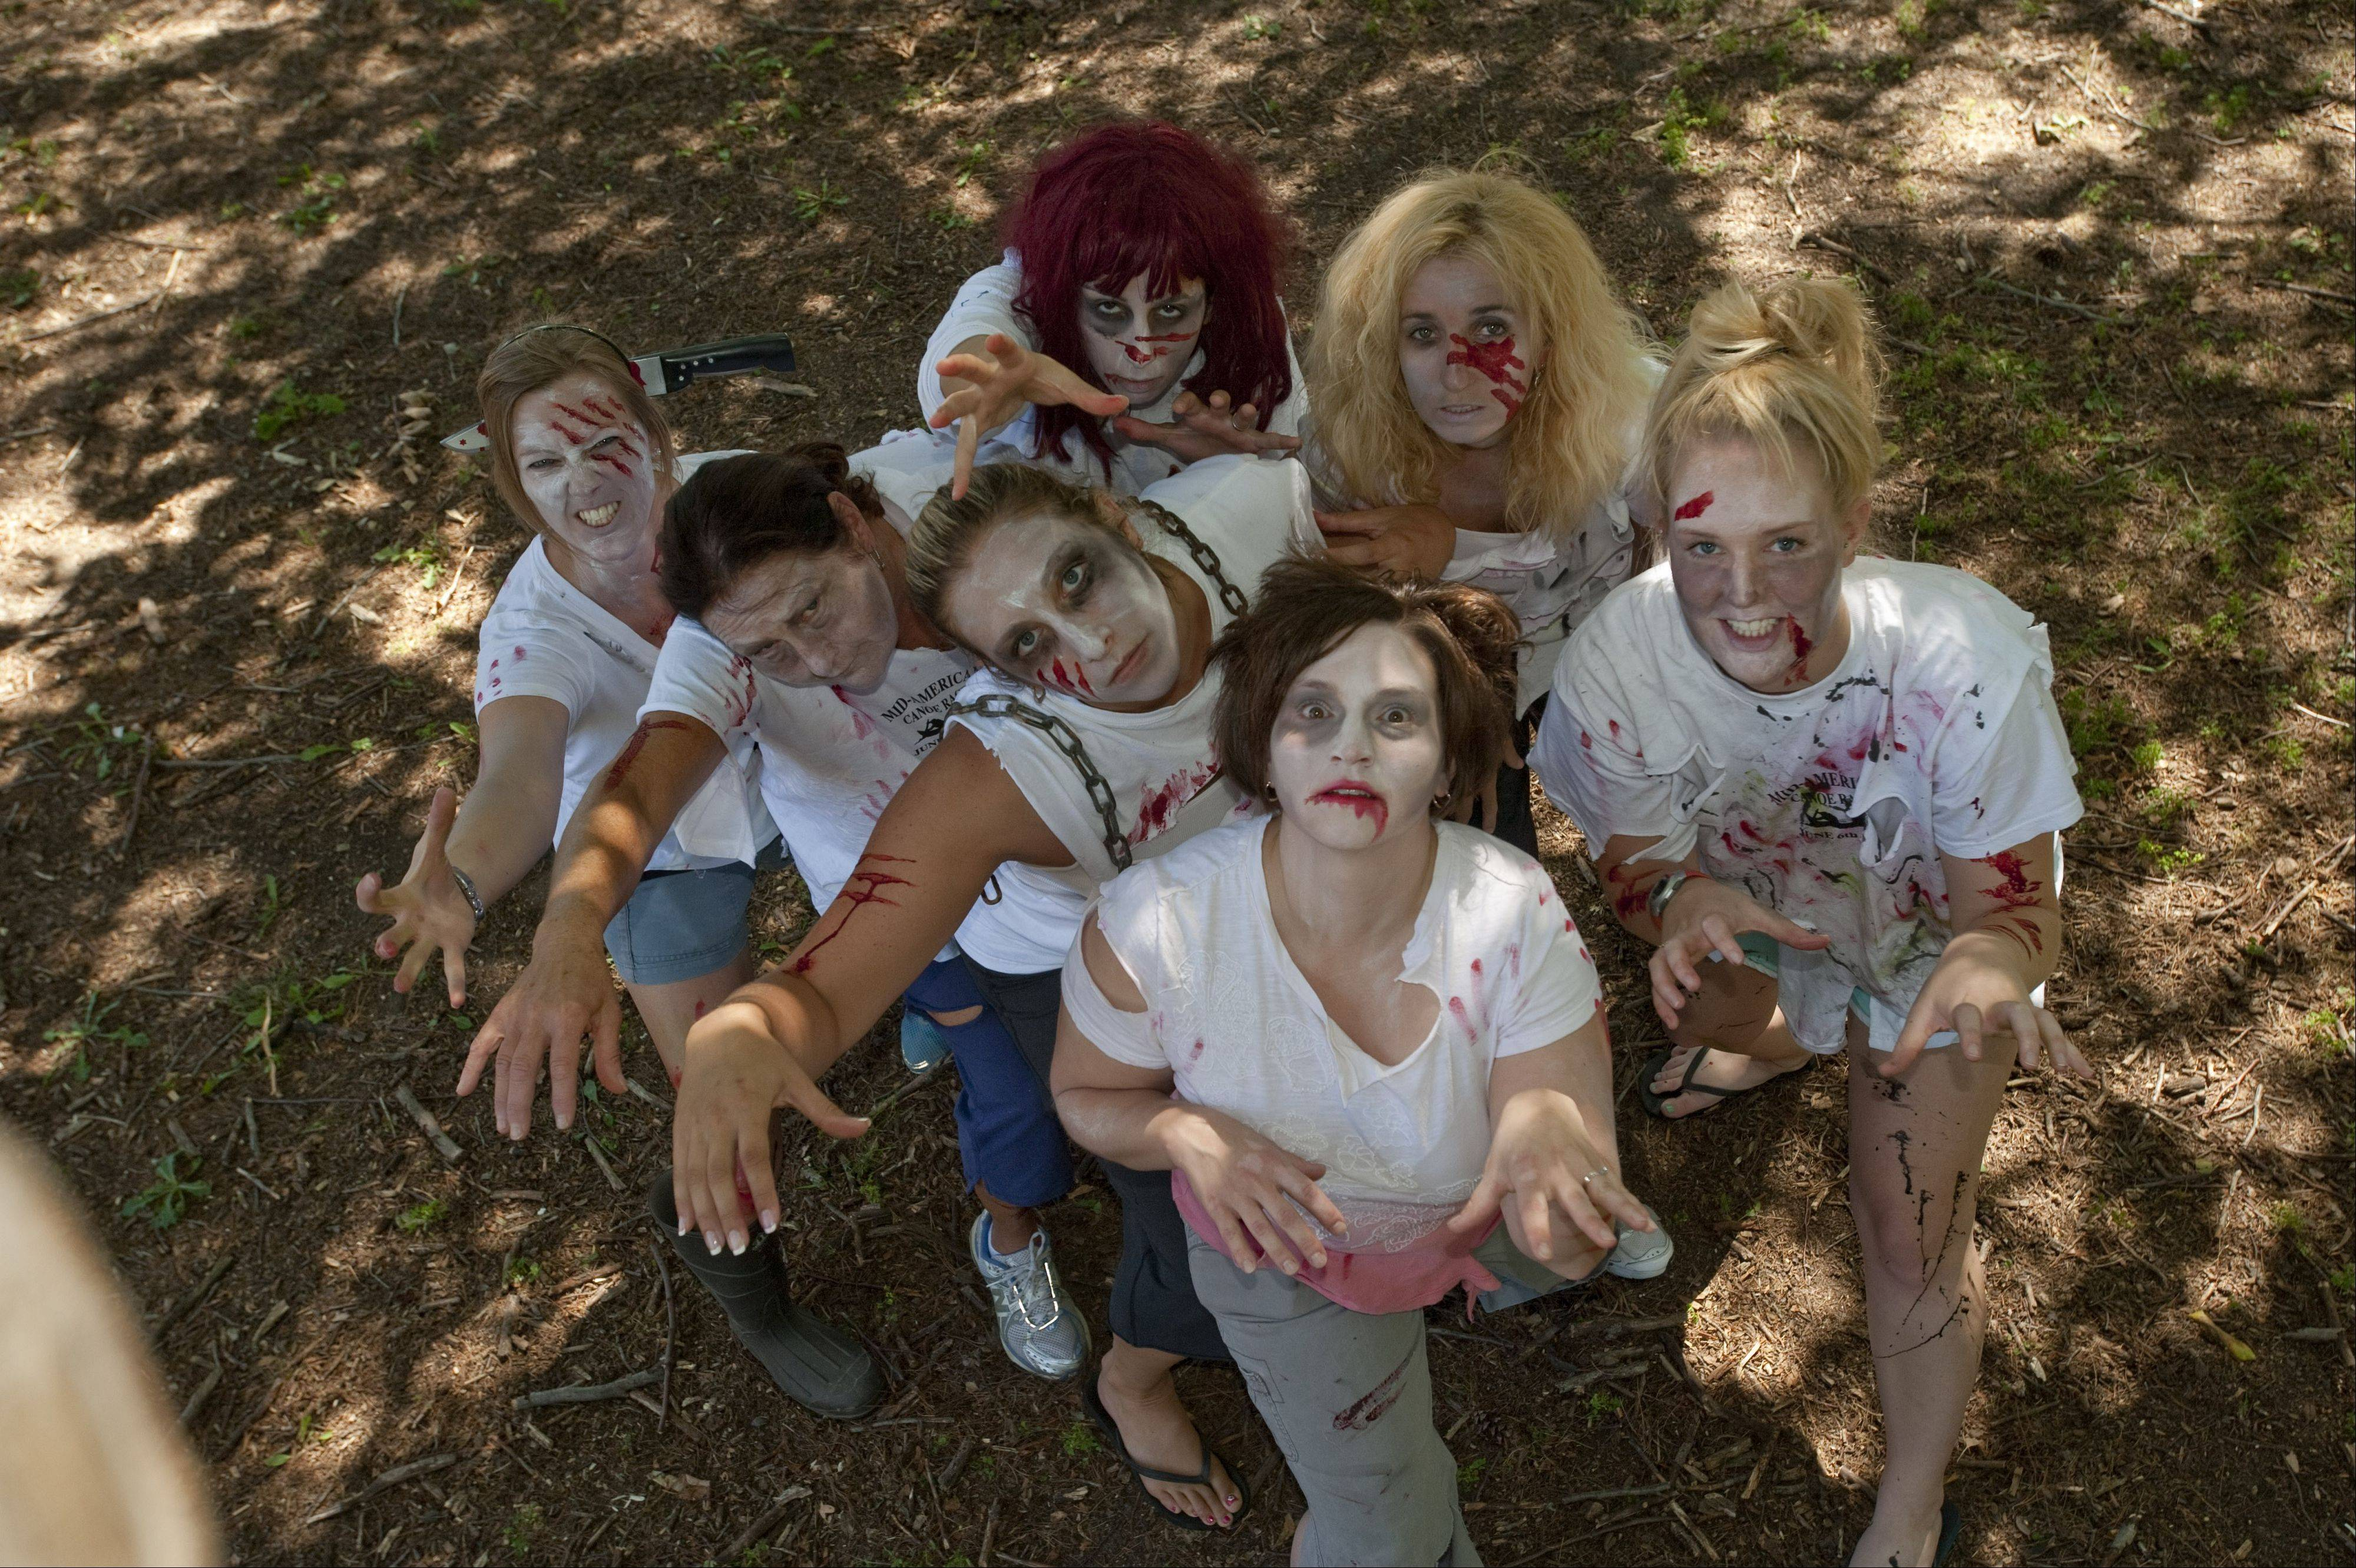 Zombies in tattered clothes and gory makeup will chase and stumble at racers participating in the Fox Valley Park District's first Zombie Invasion 5K on Friday, Oct. 5, at Blackberry Farm.